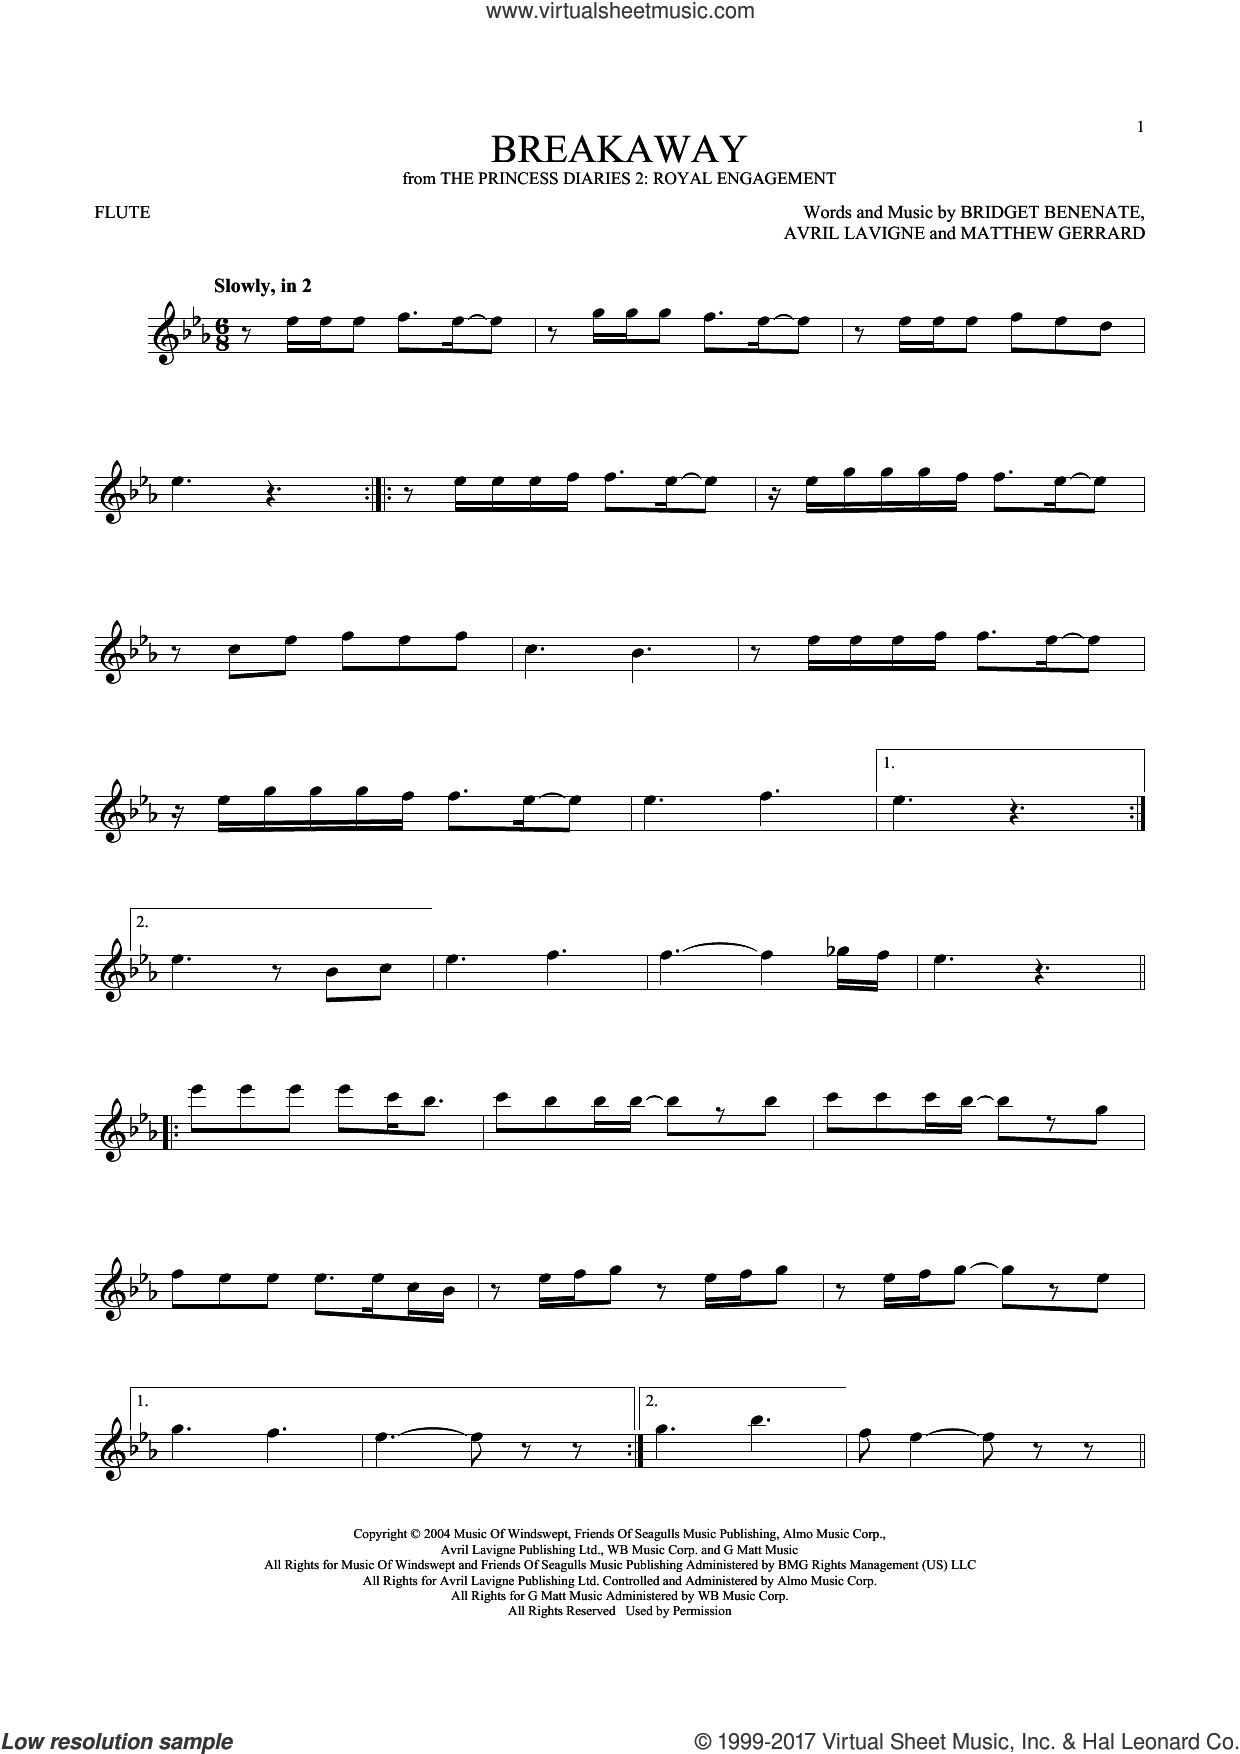 Breakaway sheet music for flute solo by Matthew Gerrard, Kelly Clarkson, Avril Lavigne and Bridget Benenate. Score Image Preview.